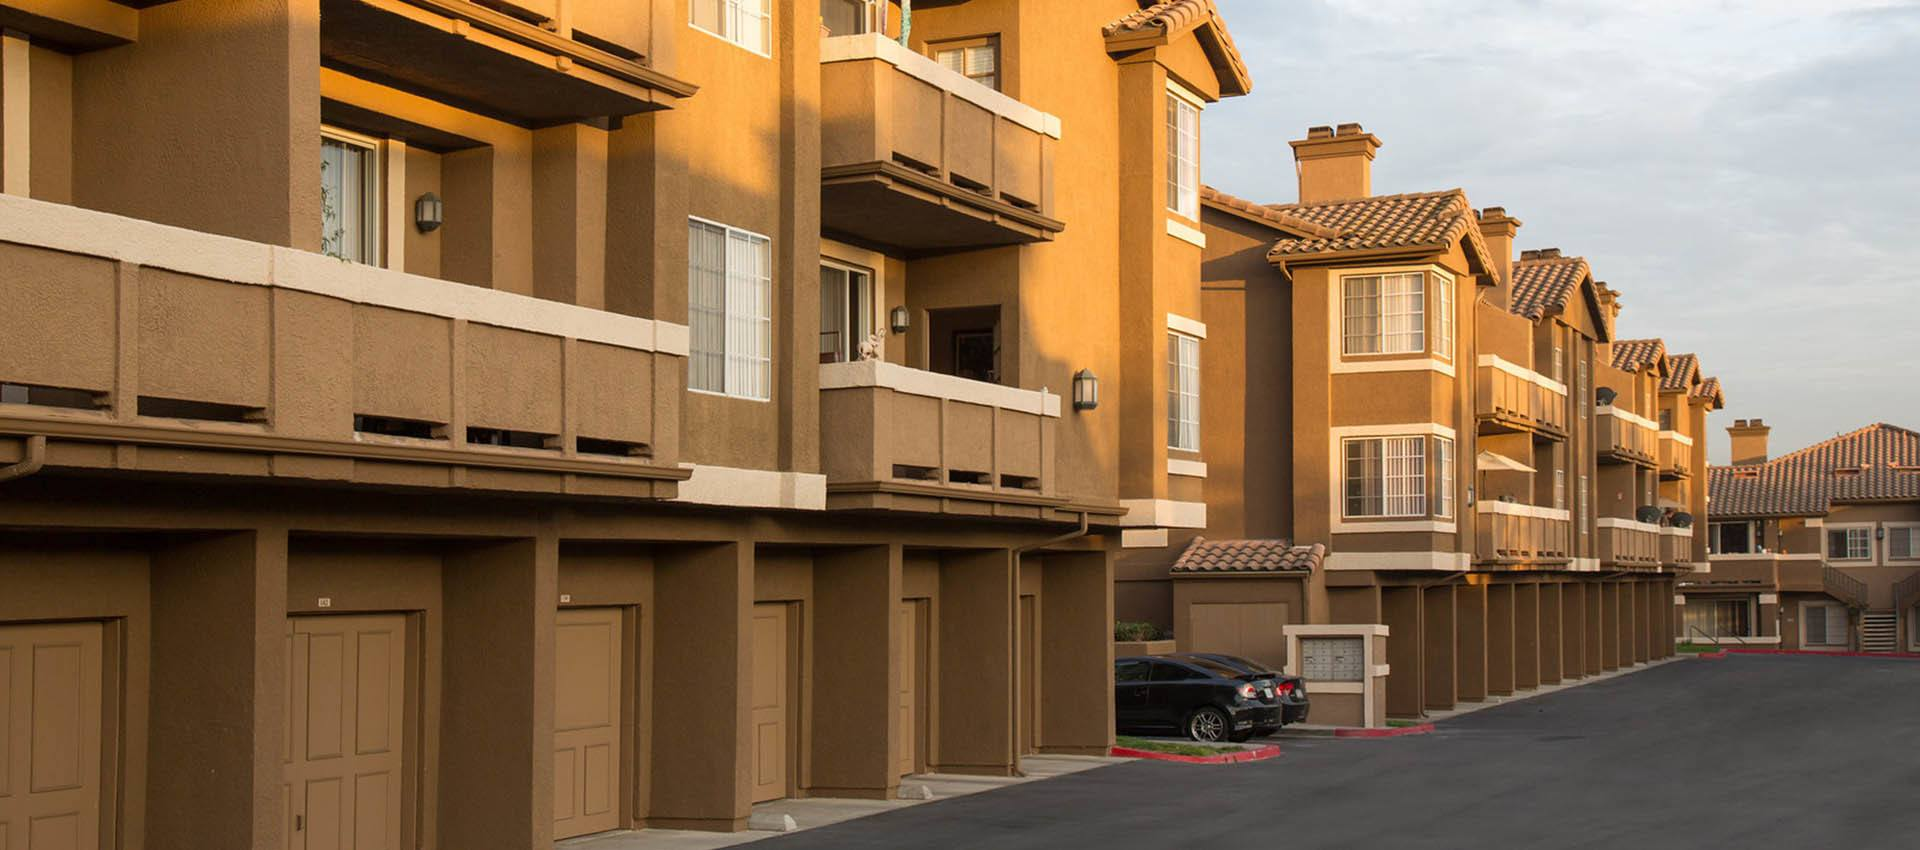 Condominiums Featuring Garages at Paloma Summit Condominium Rentals in Foothill Ranch, CA